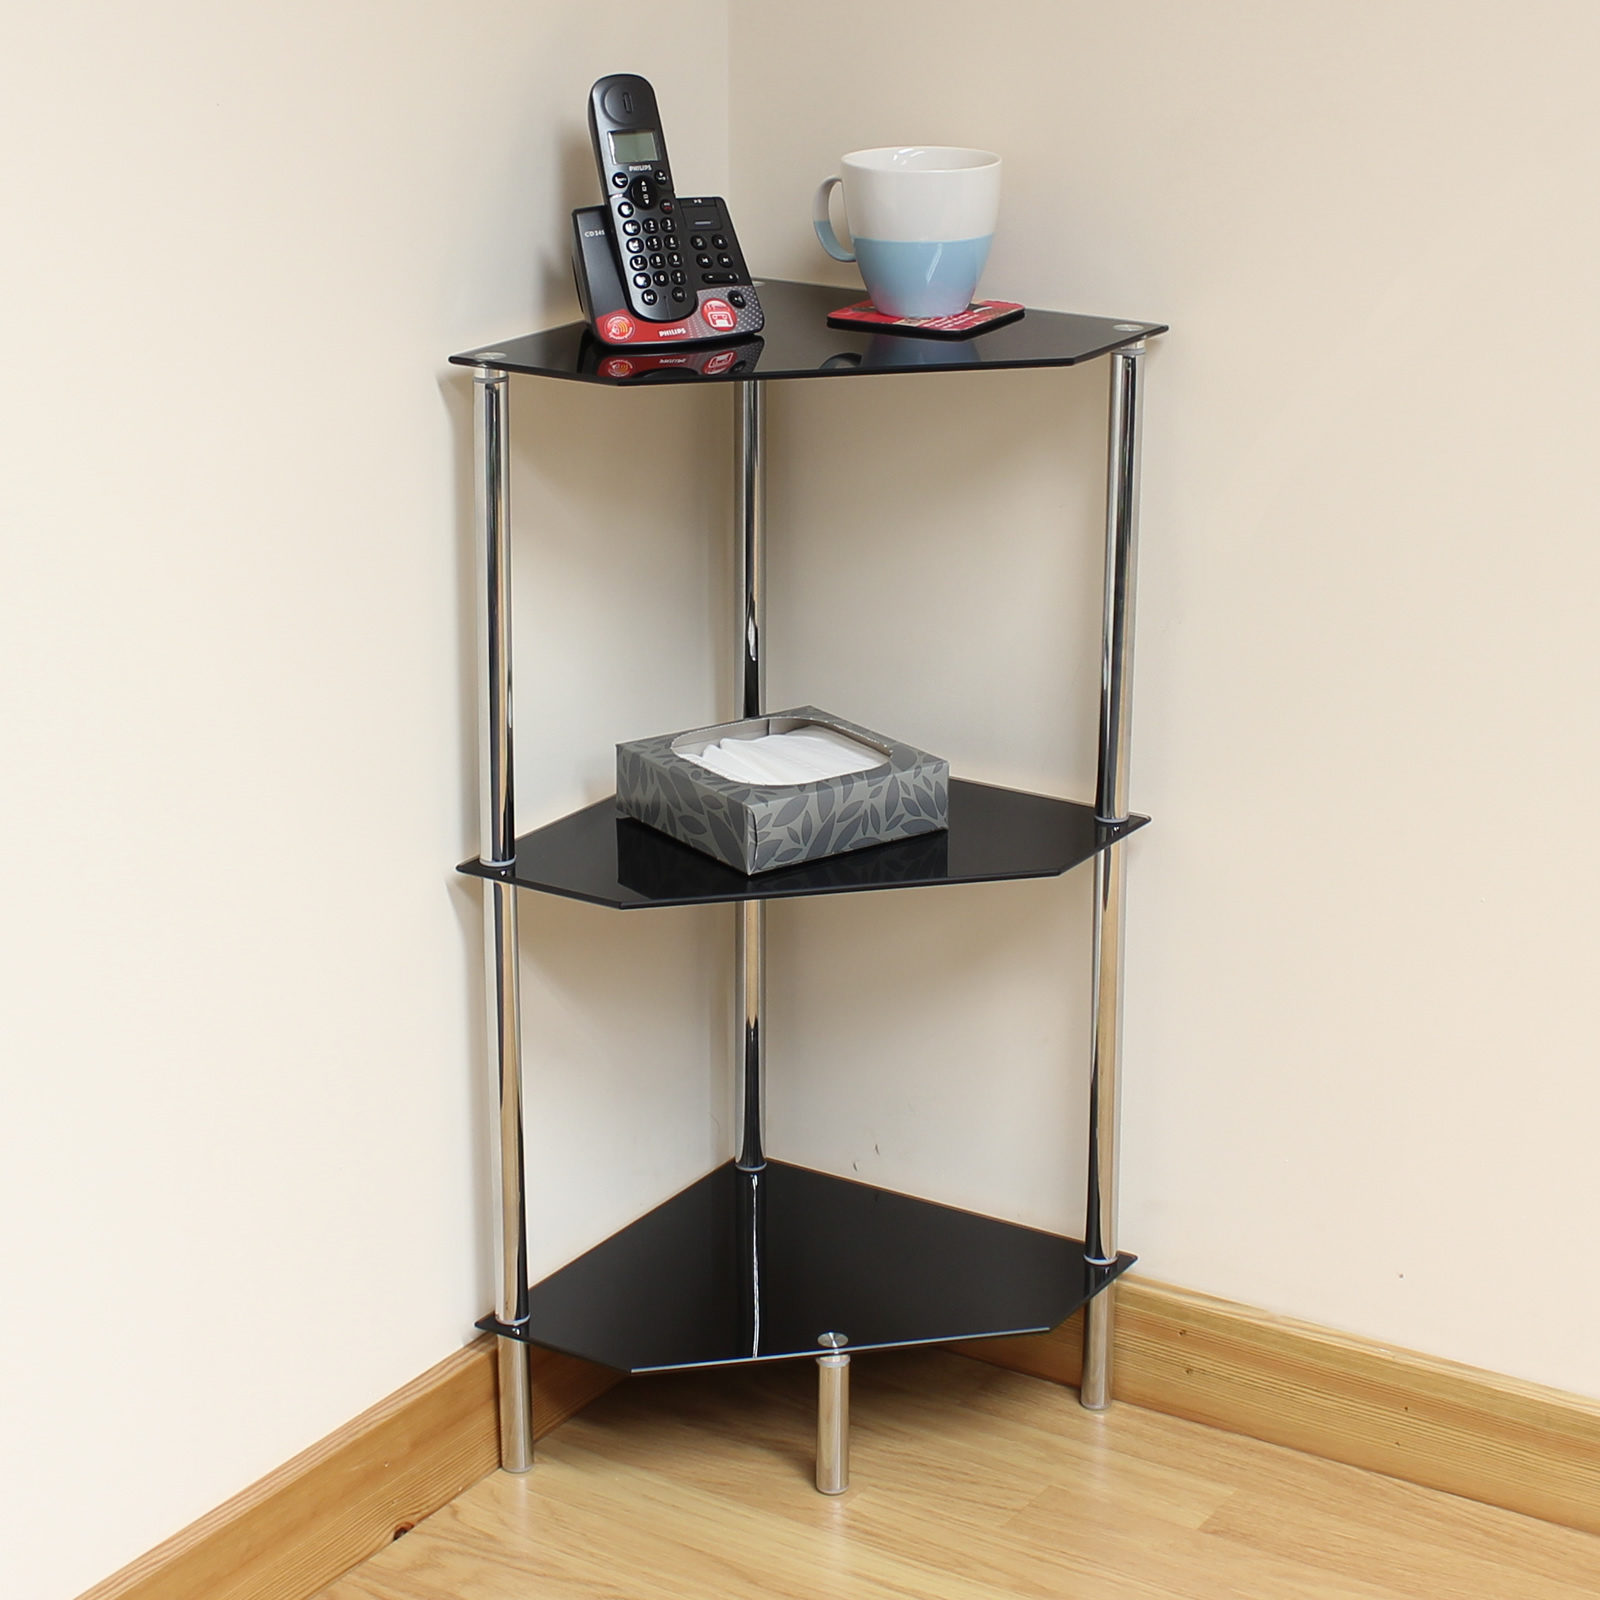 Sentinel Hartleys 3 Tier Black Glass Angled Corner Side/End/Lamp Table Shelf /Display